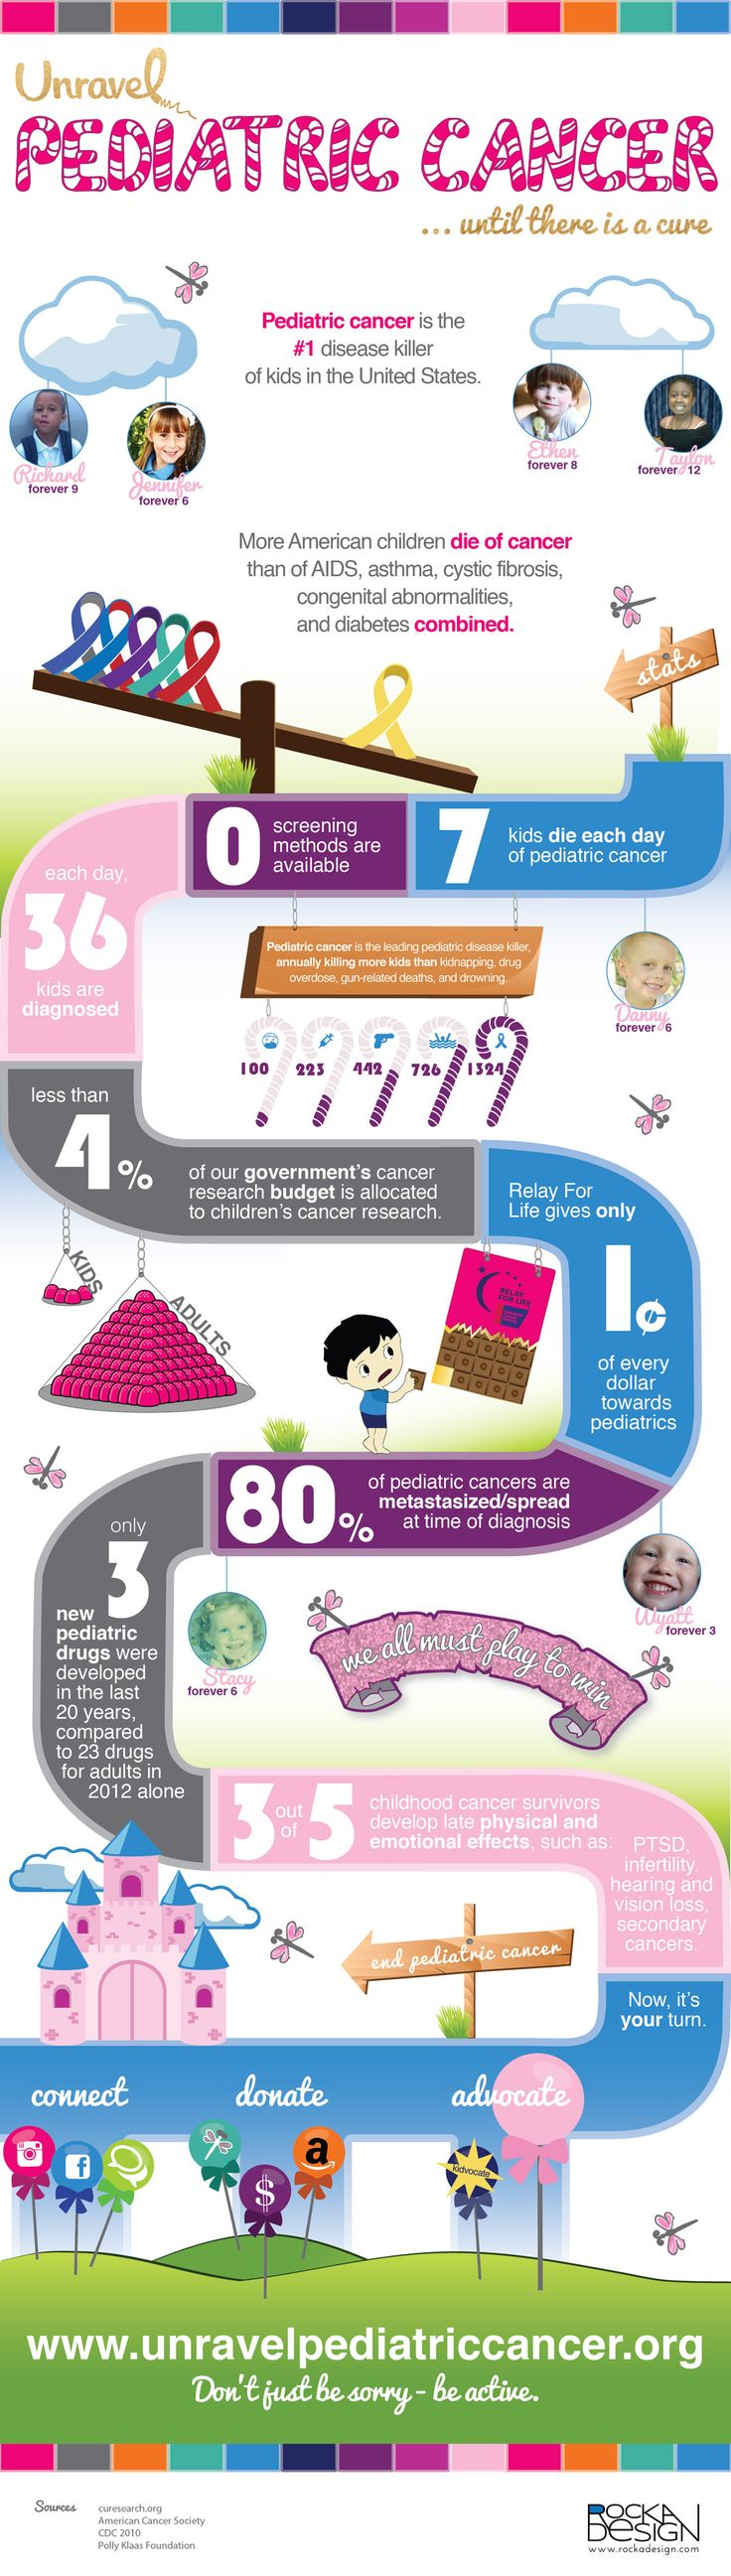 Pediatric Cancer Facts Infographic